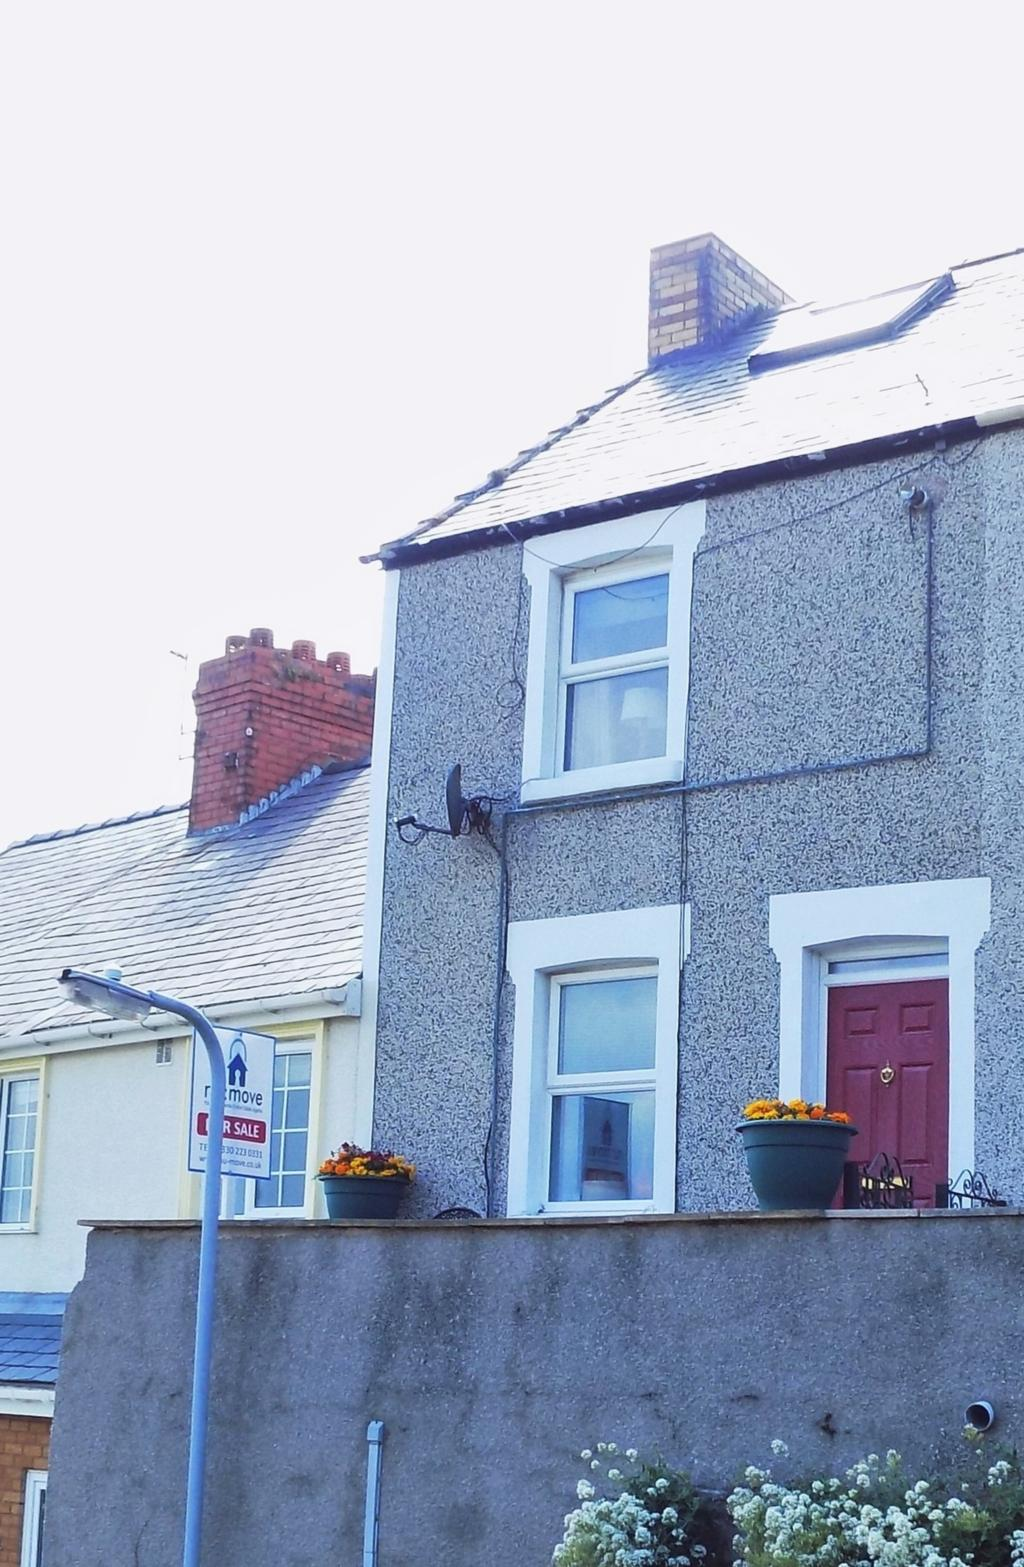 Property photo 1, Belle Vue Terrace, Llandudno, LL30